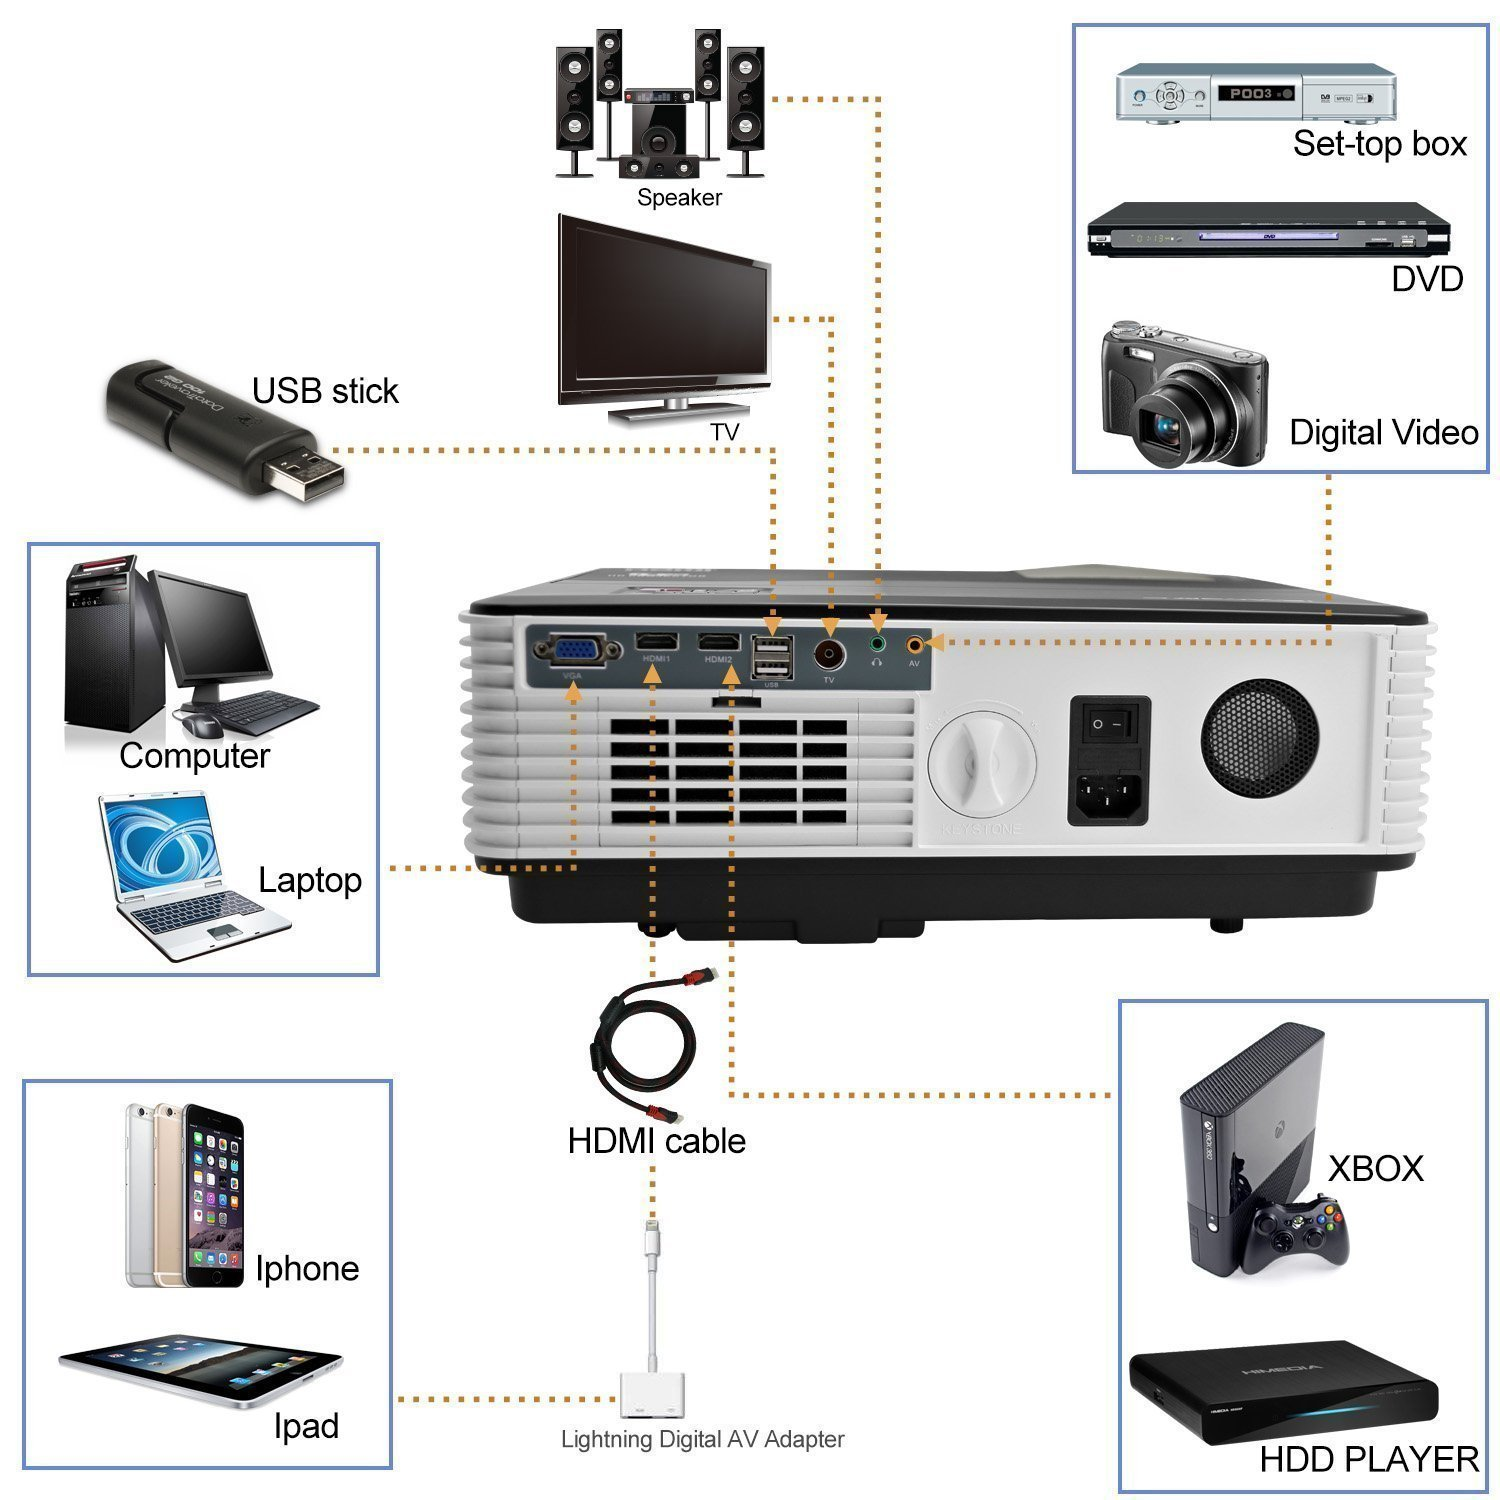 HD Movie Projector 1080p Outdoor Indoor 3500 Lumens, 200'' Video Projector Full HD 1280x800, Home Theater Projector Dual HDMI USB for Laptop iPhone Smartphone Mac Game with Speaker 50,000hrs Led Lamp by CAIWEI (Image #4)